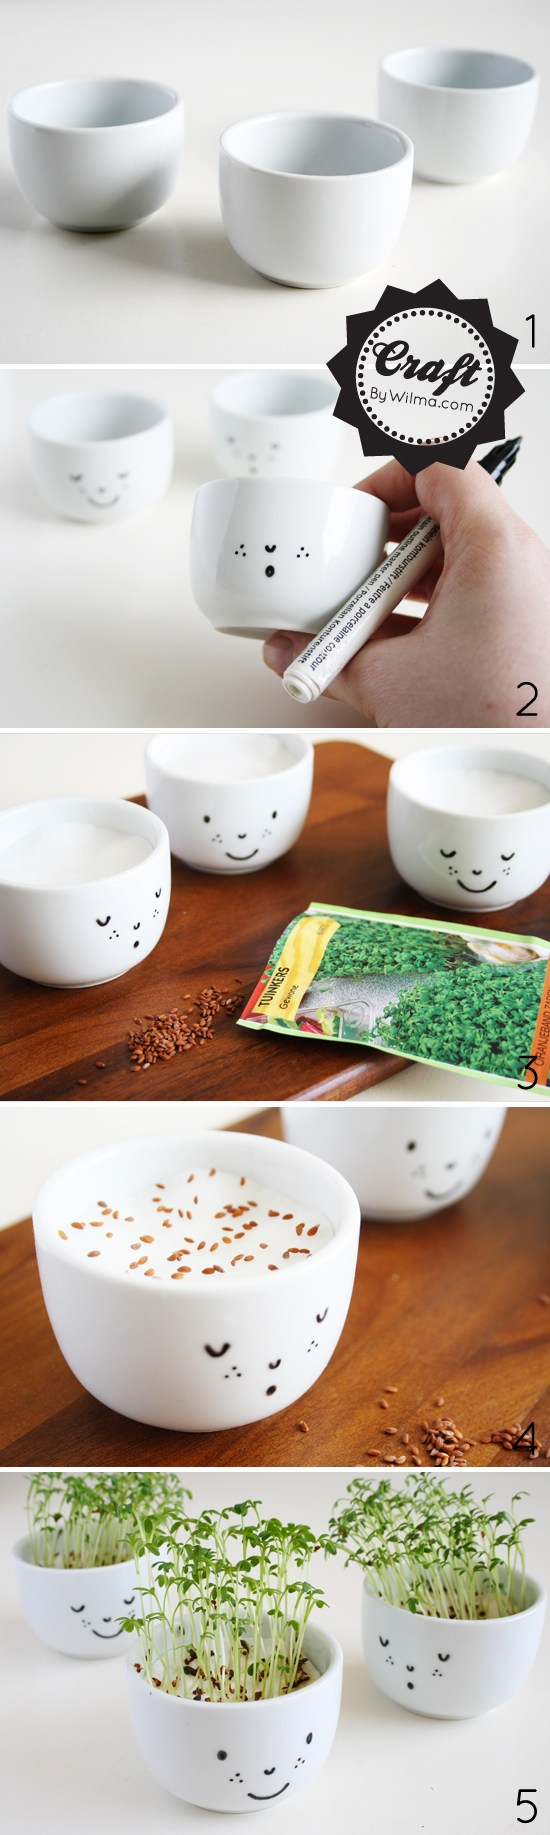 http://www.nobiggie.net/wp-content/uploads/2016/02/cute-cress-cups-with-a-face-diy.jpg